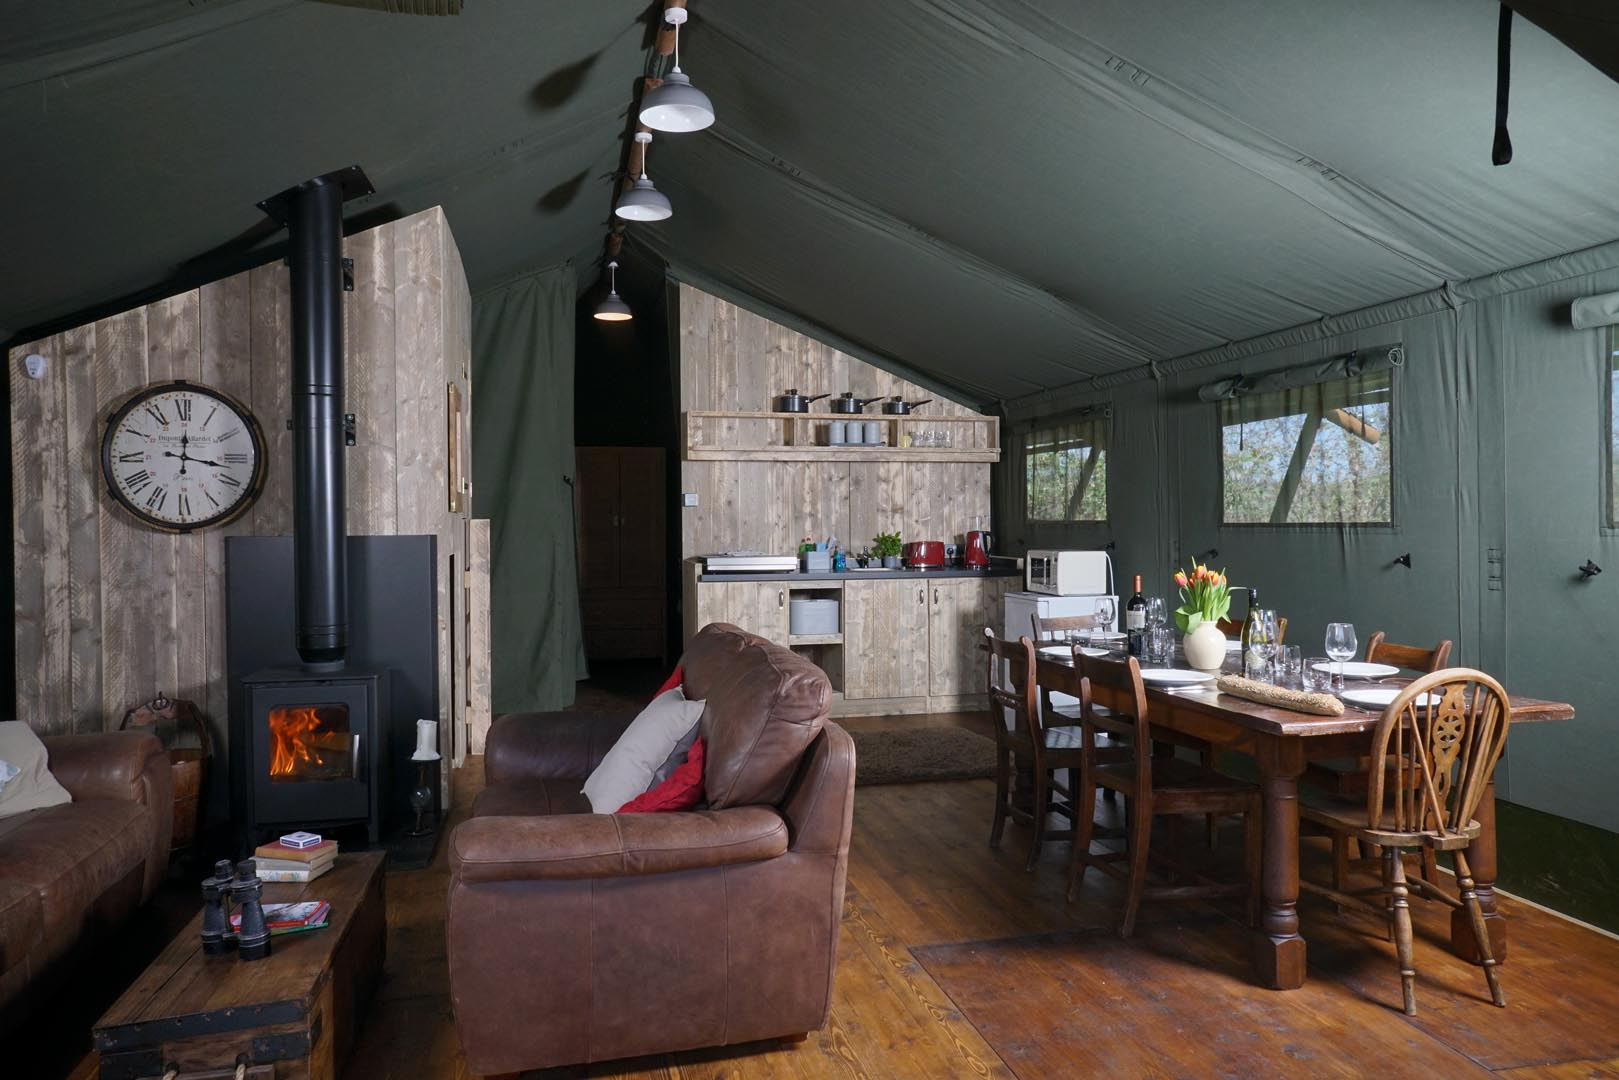 Luxurious-interior-of-Goshawk-Lodge-Gilestone-Glamping-in-Talybont.jpg